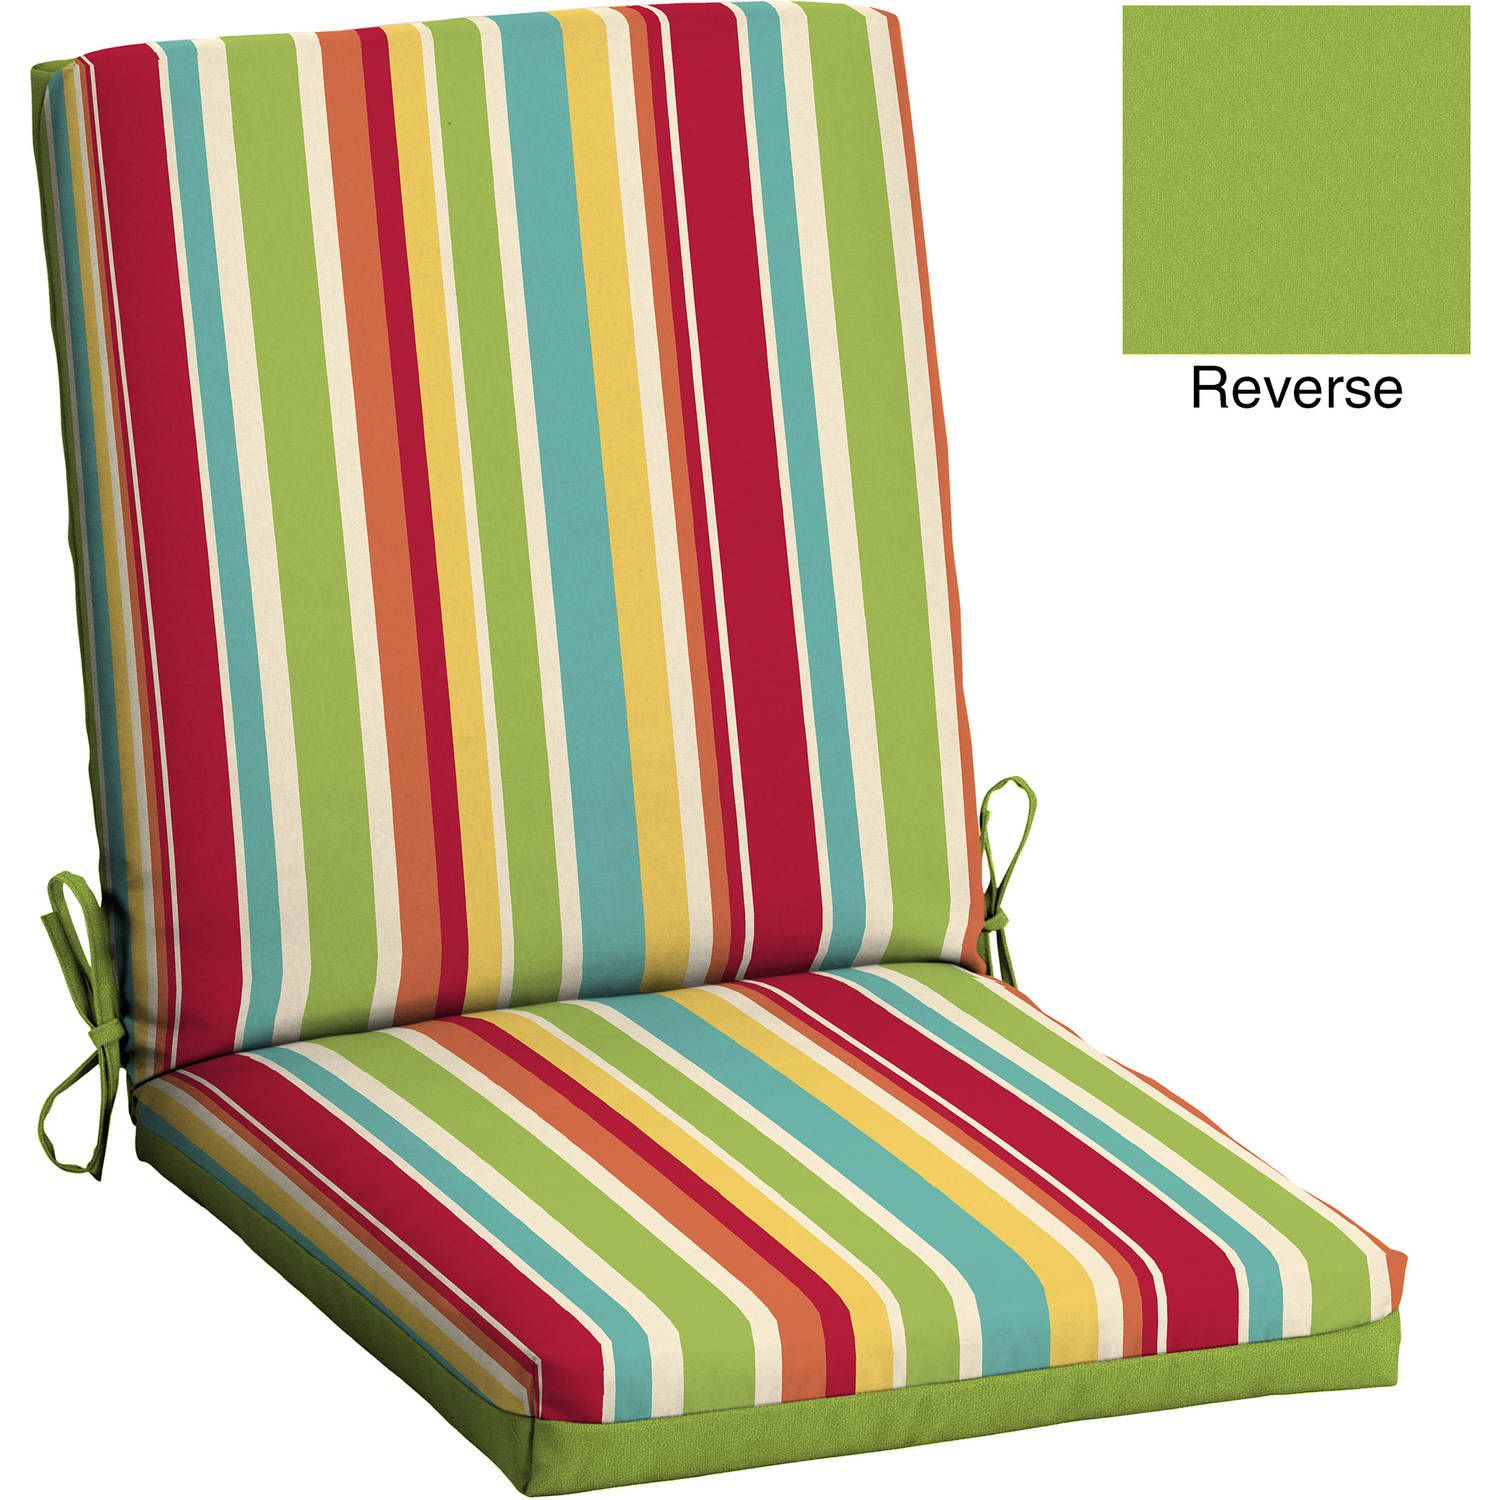 Pin by rahayu12 on spaces room low budget Patio seat